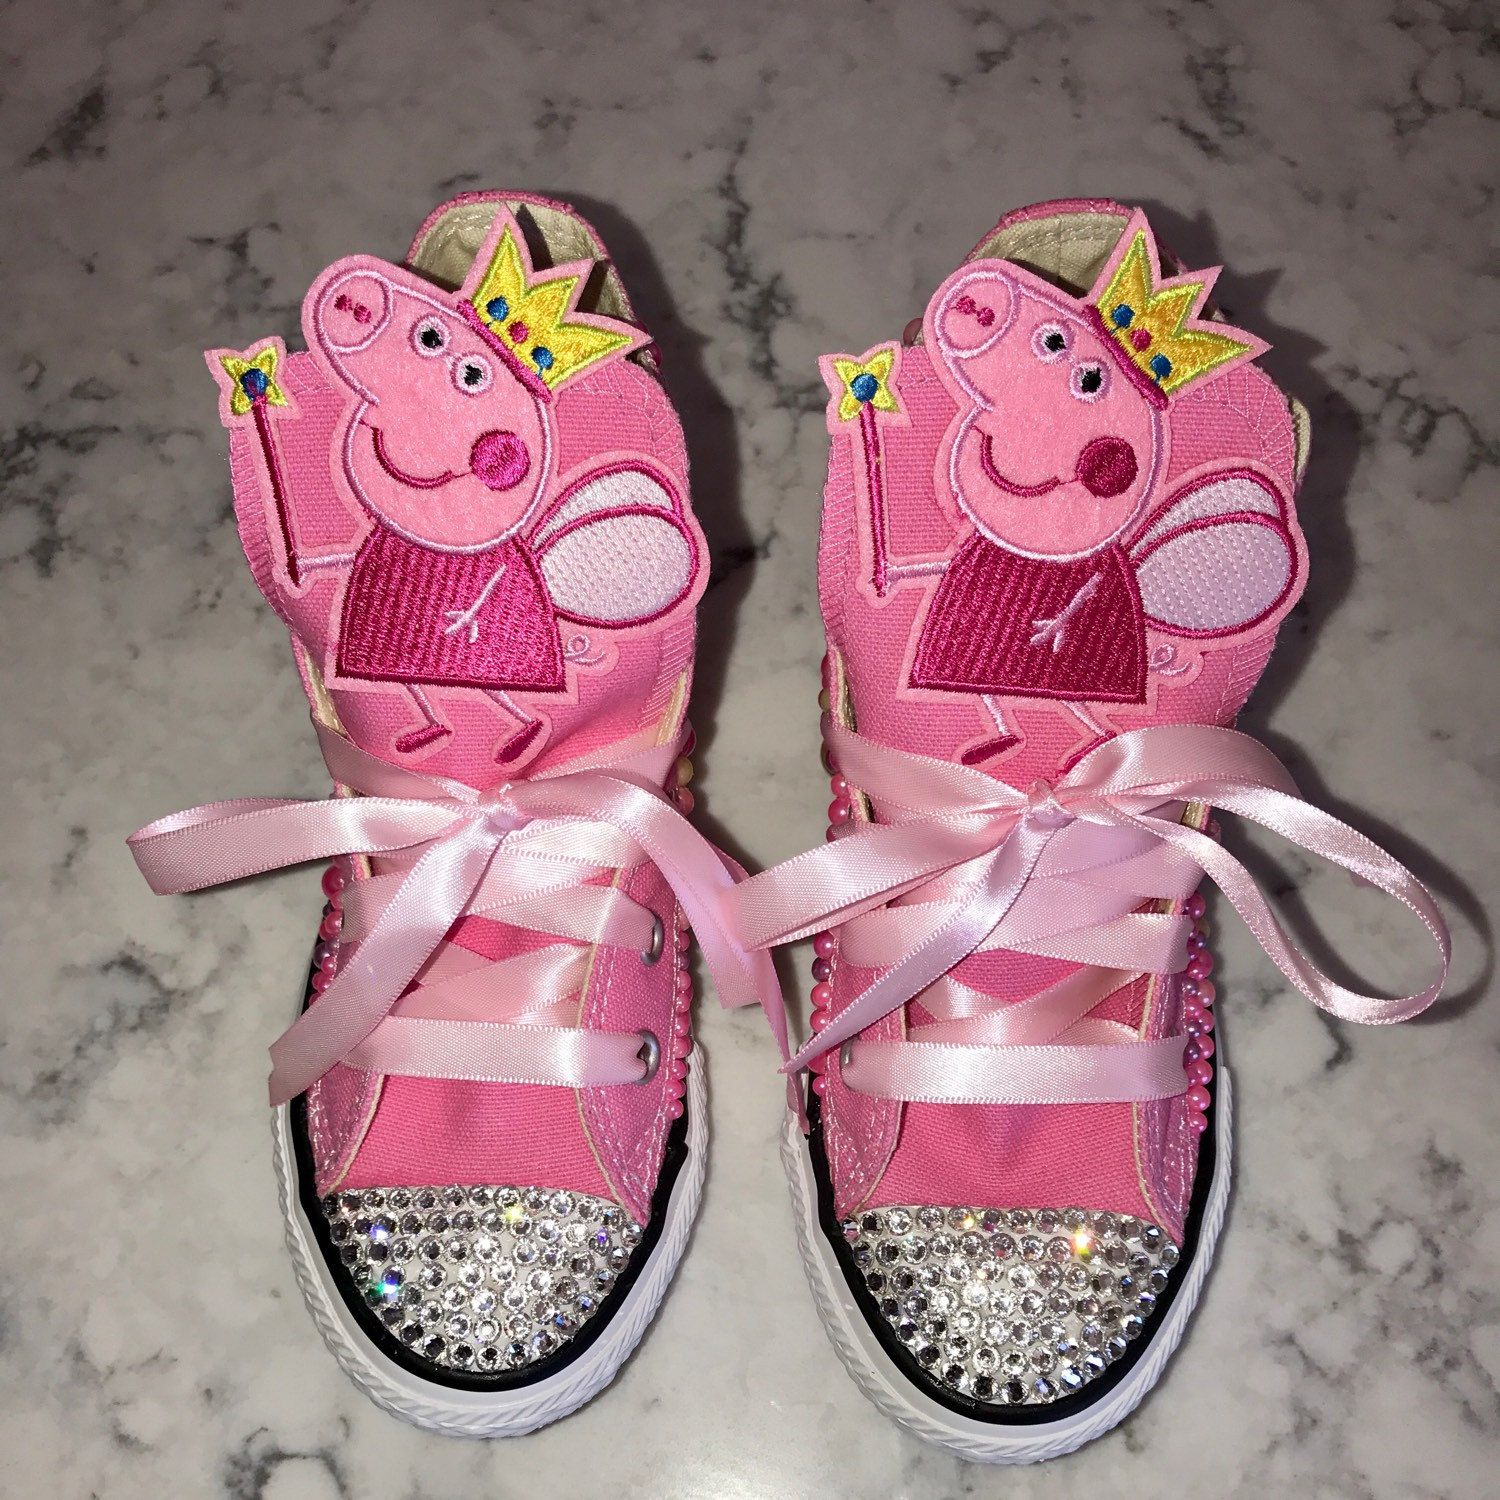 Custom Peppa Pig Converse by CalisMomByShannon on Etsy